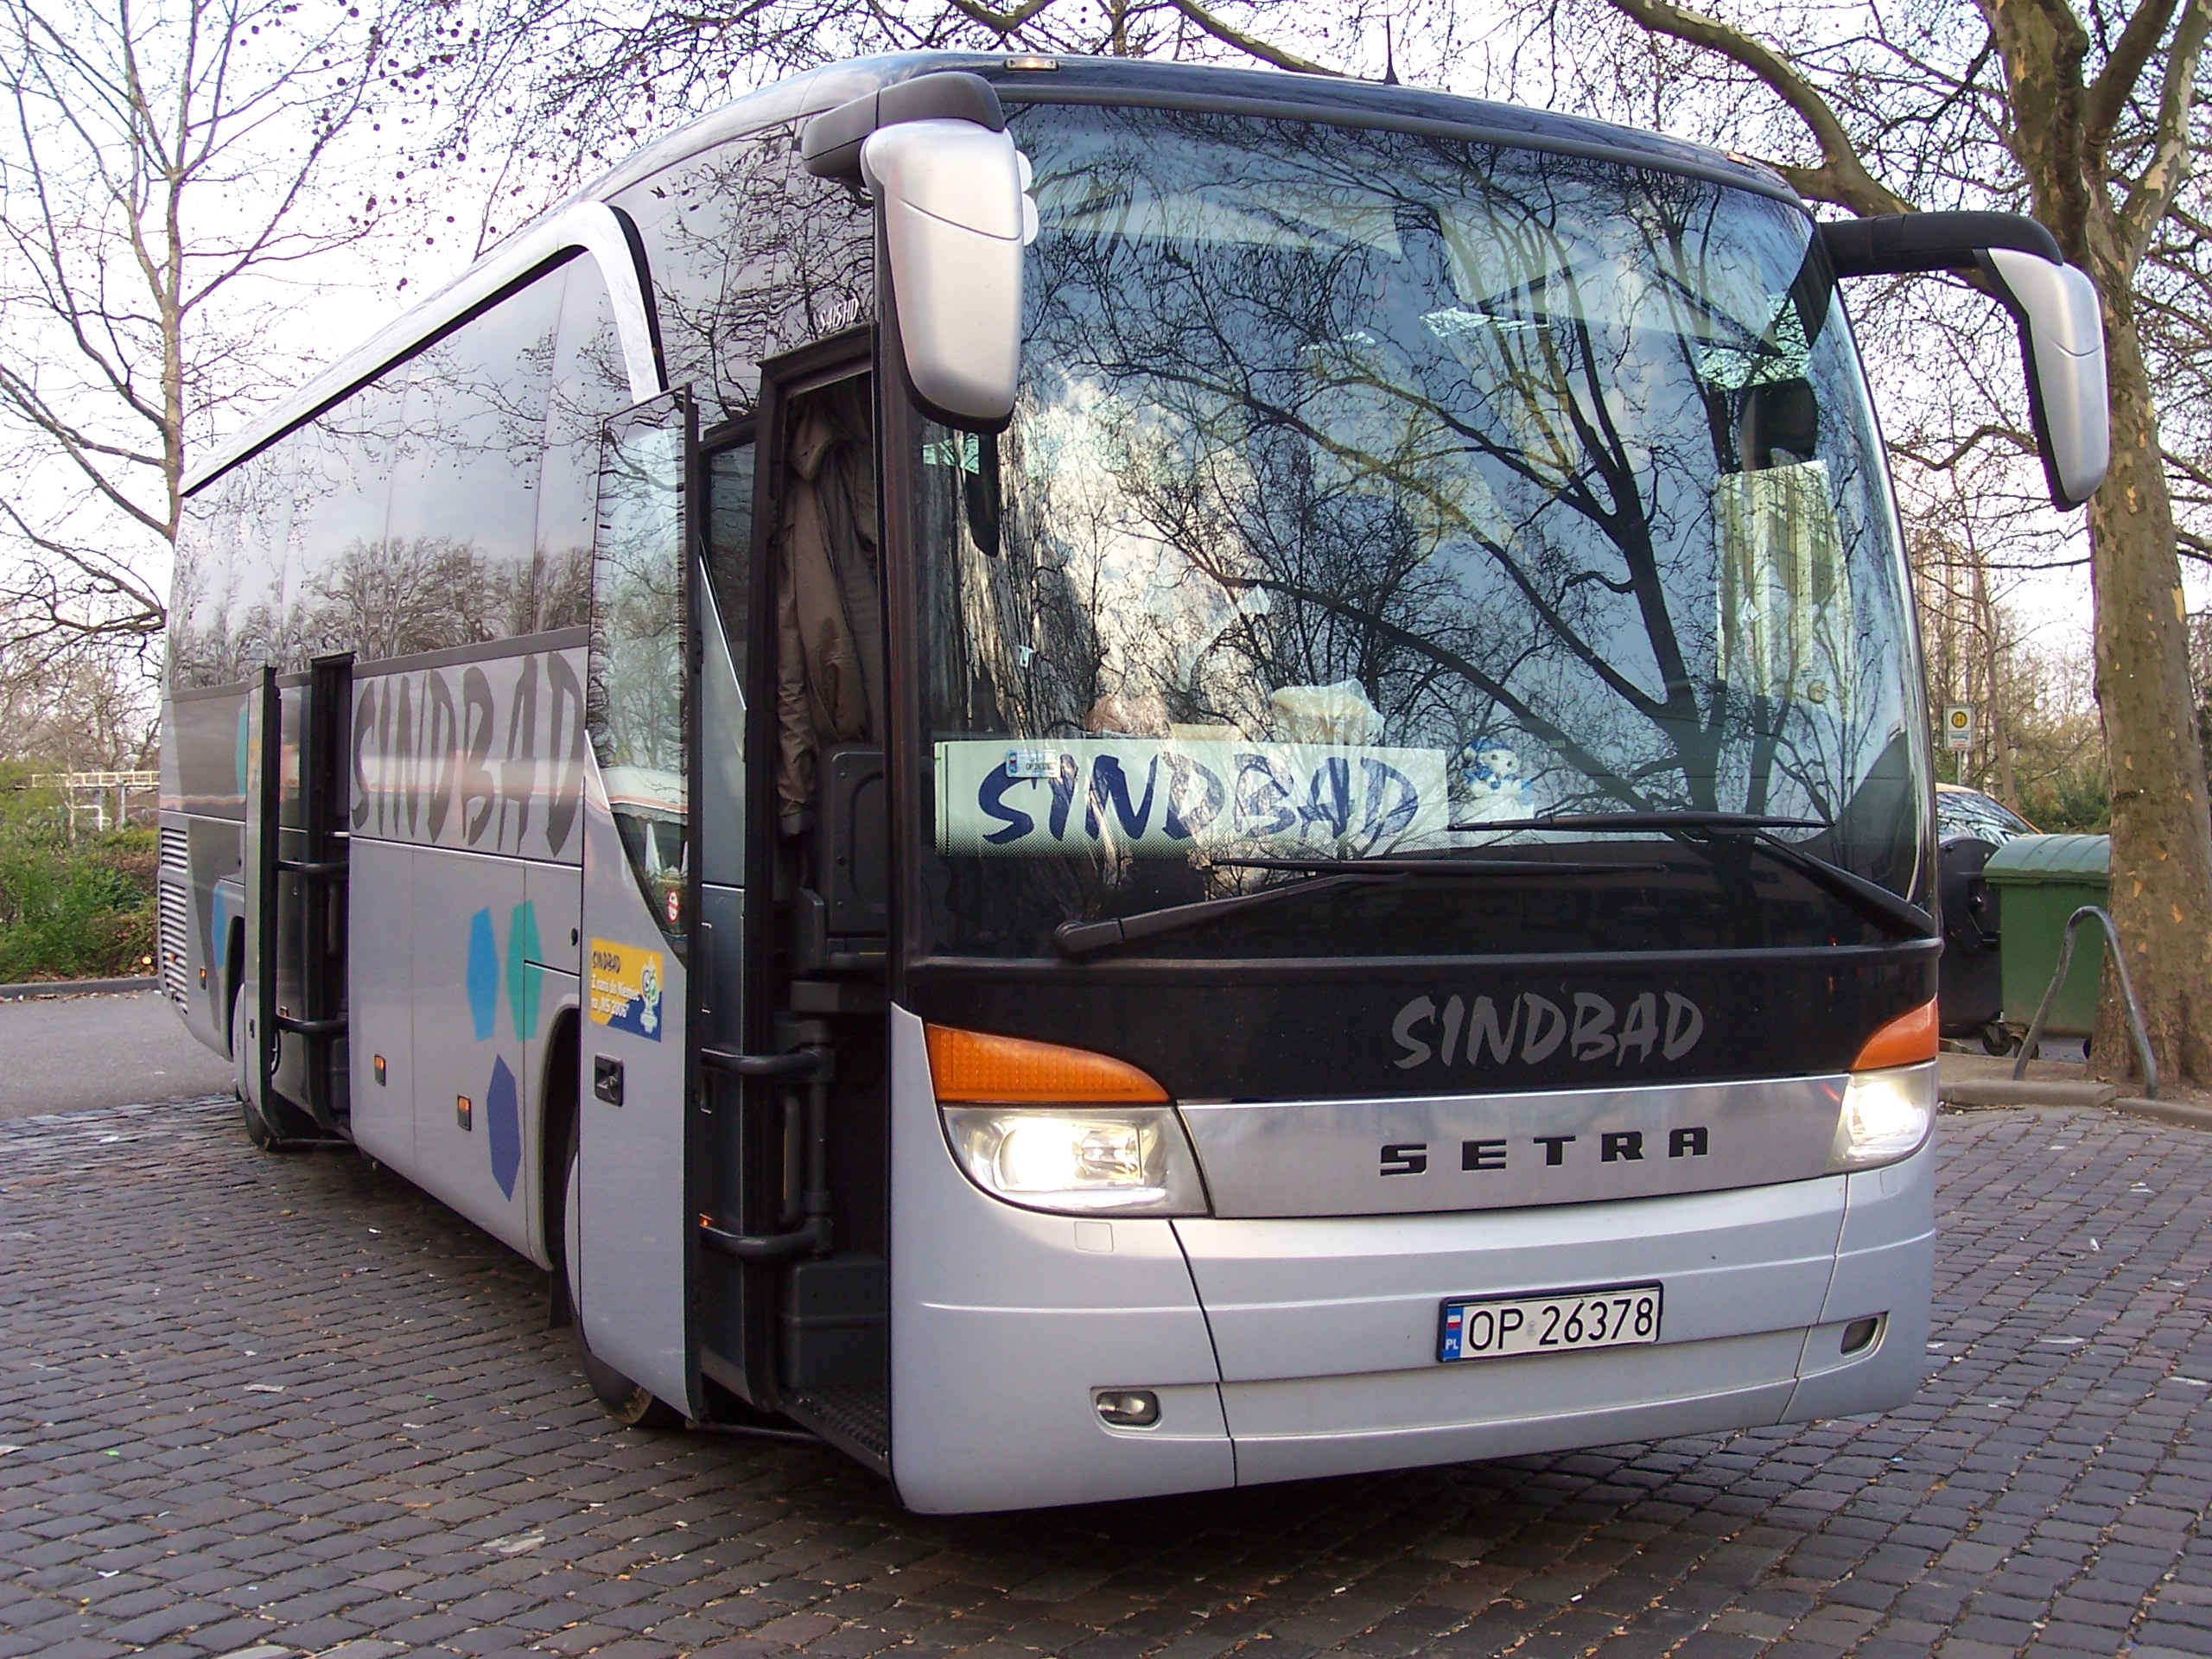 File:Setra S 415 HD Mannheim 100 4666.jpg - Wikimedia Commons